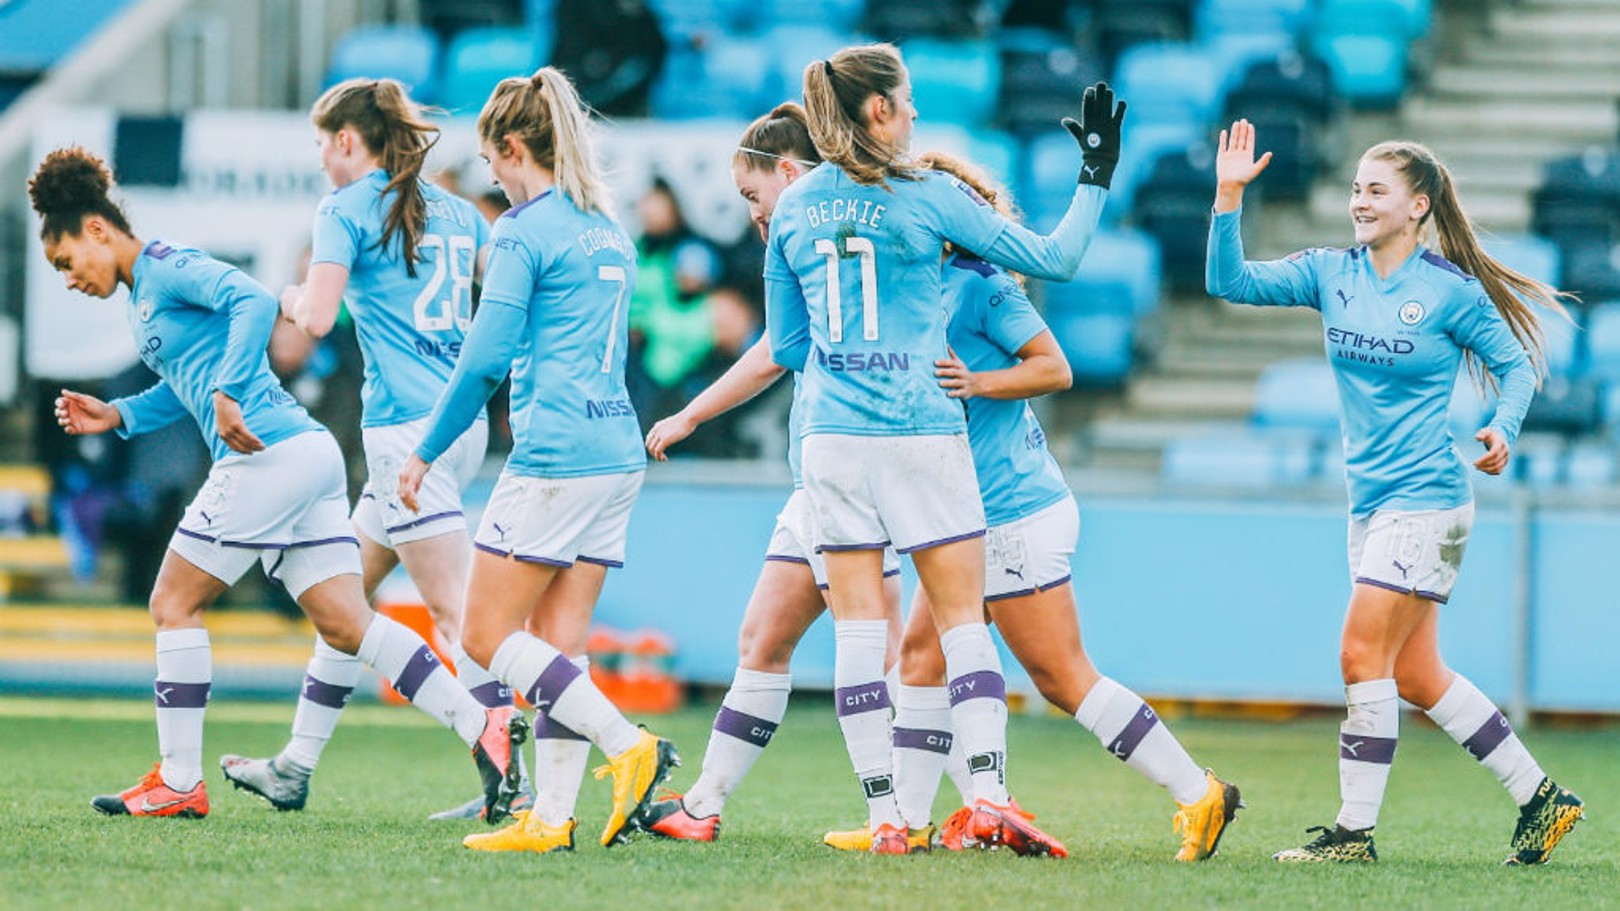 FA CUP: City are through to the quarter-final after our 10-0 win over Ipswich